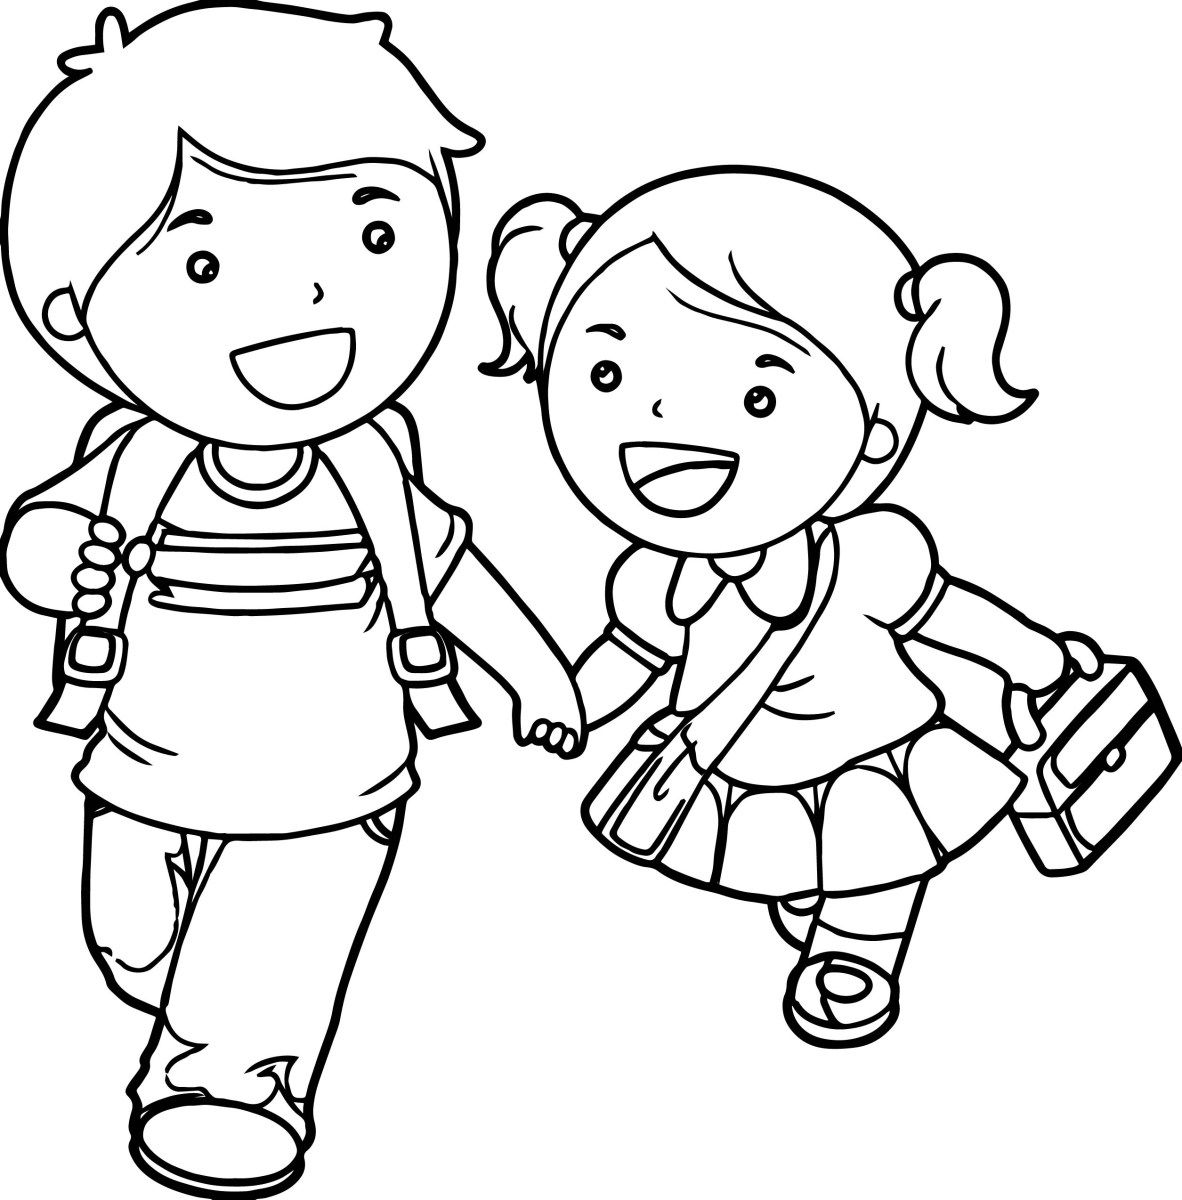 coloring pages boys and girls children boys and a girl celebrating coloring page free boys and pages girls coloring